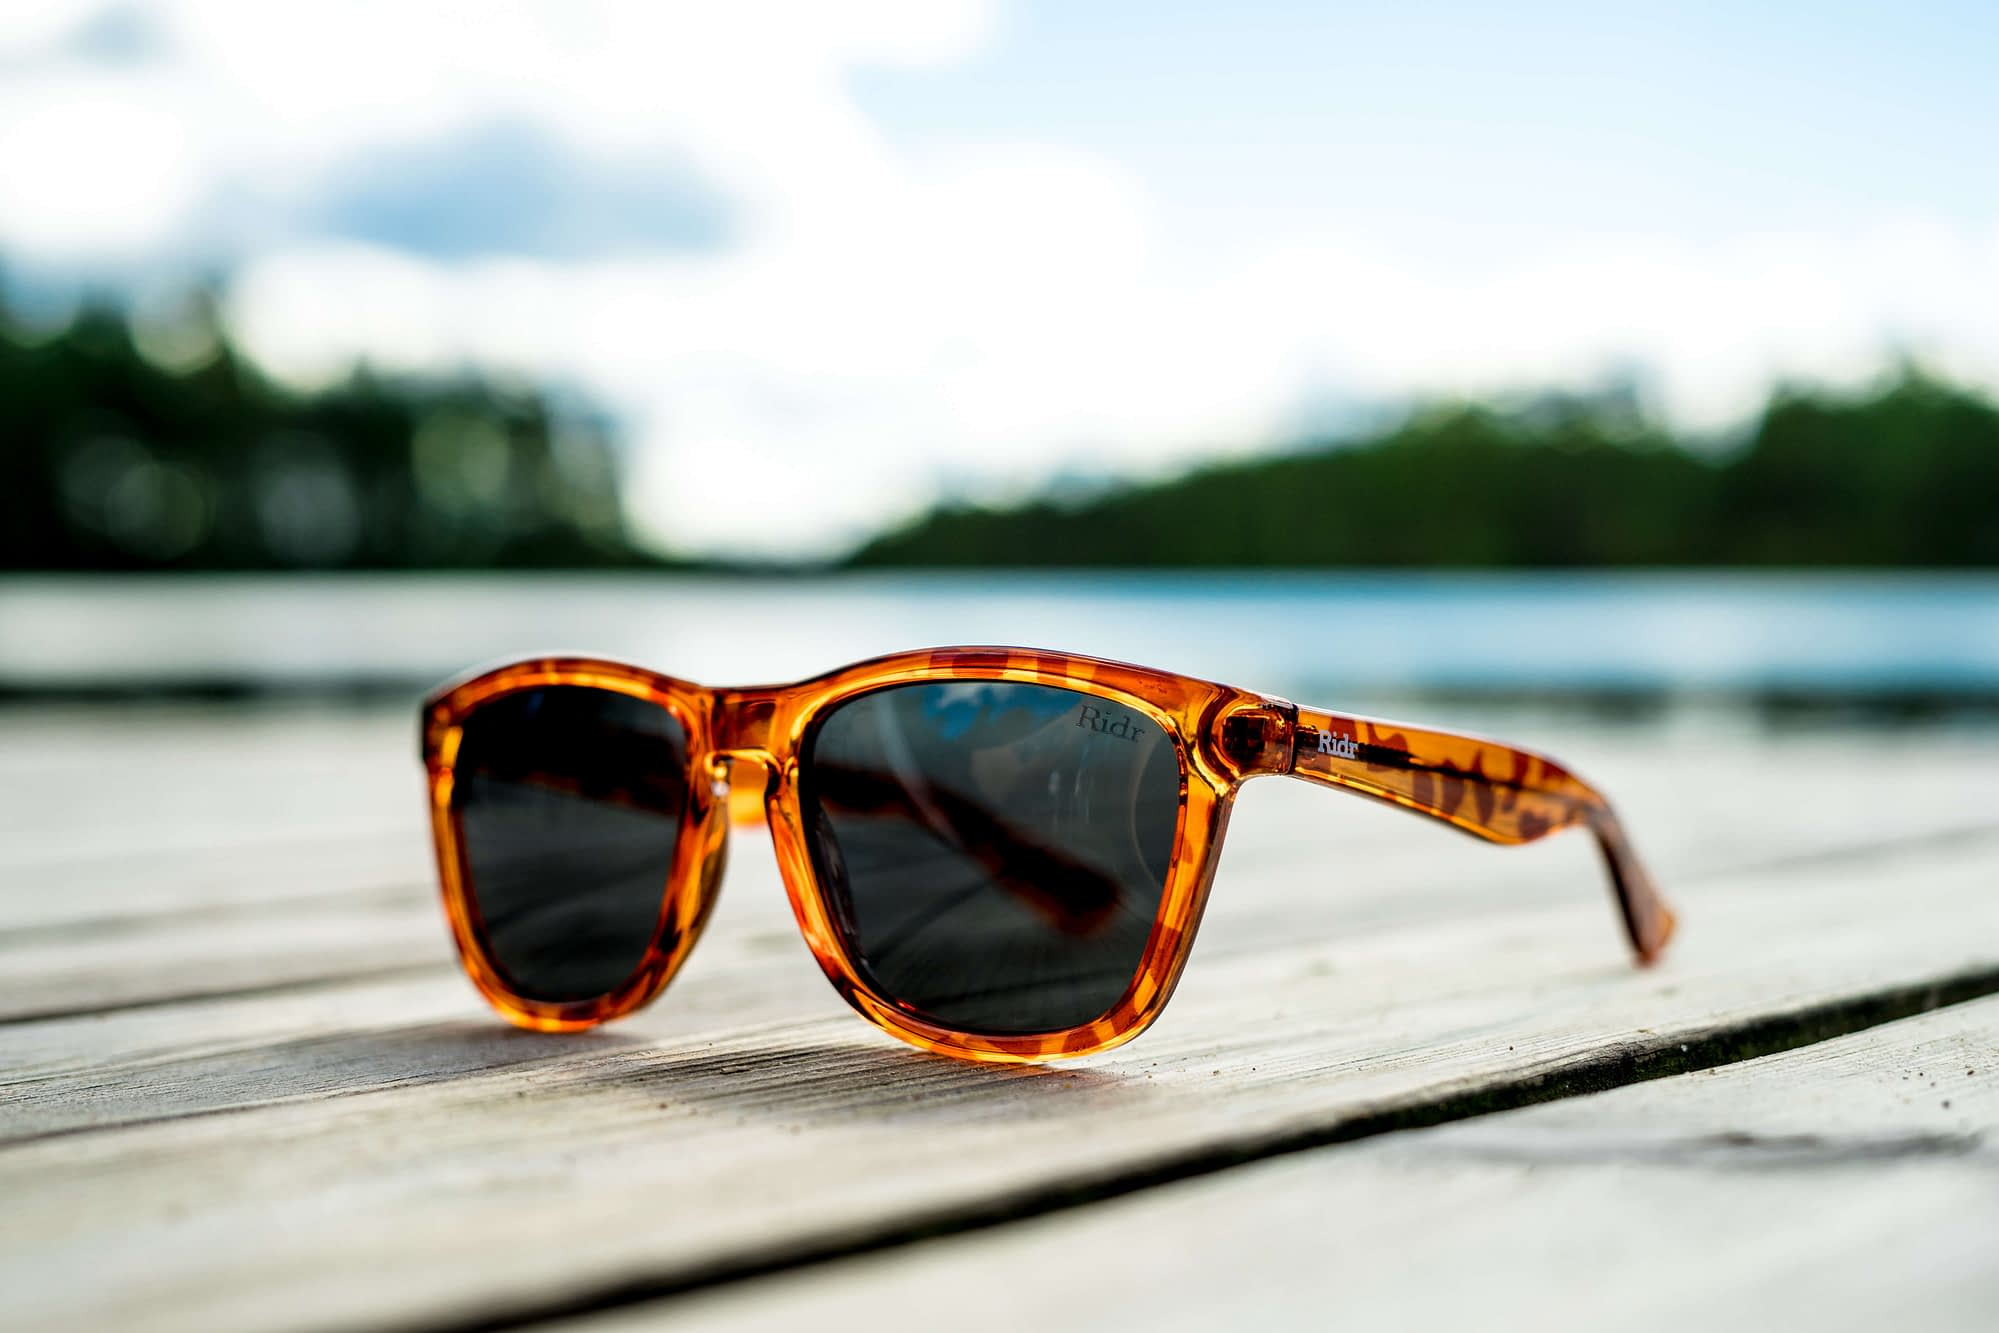 Fully Customisable Ridr Switch Sunglasses